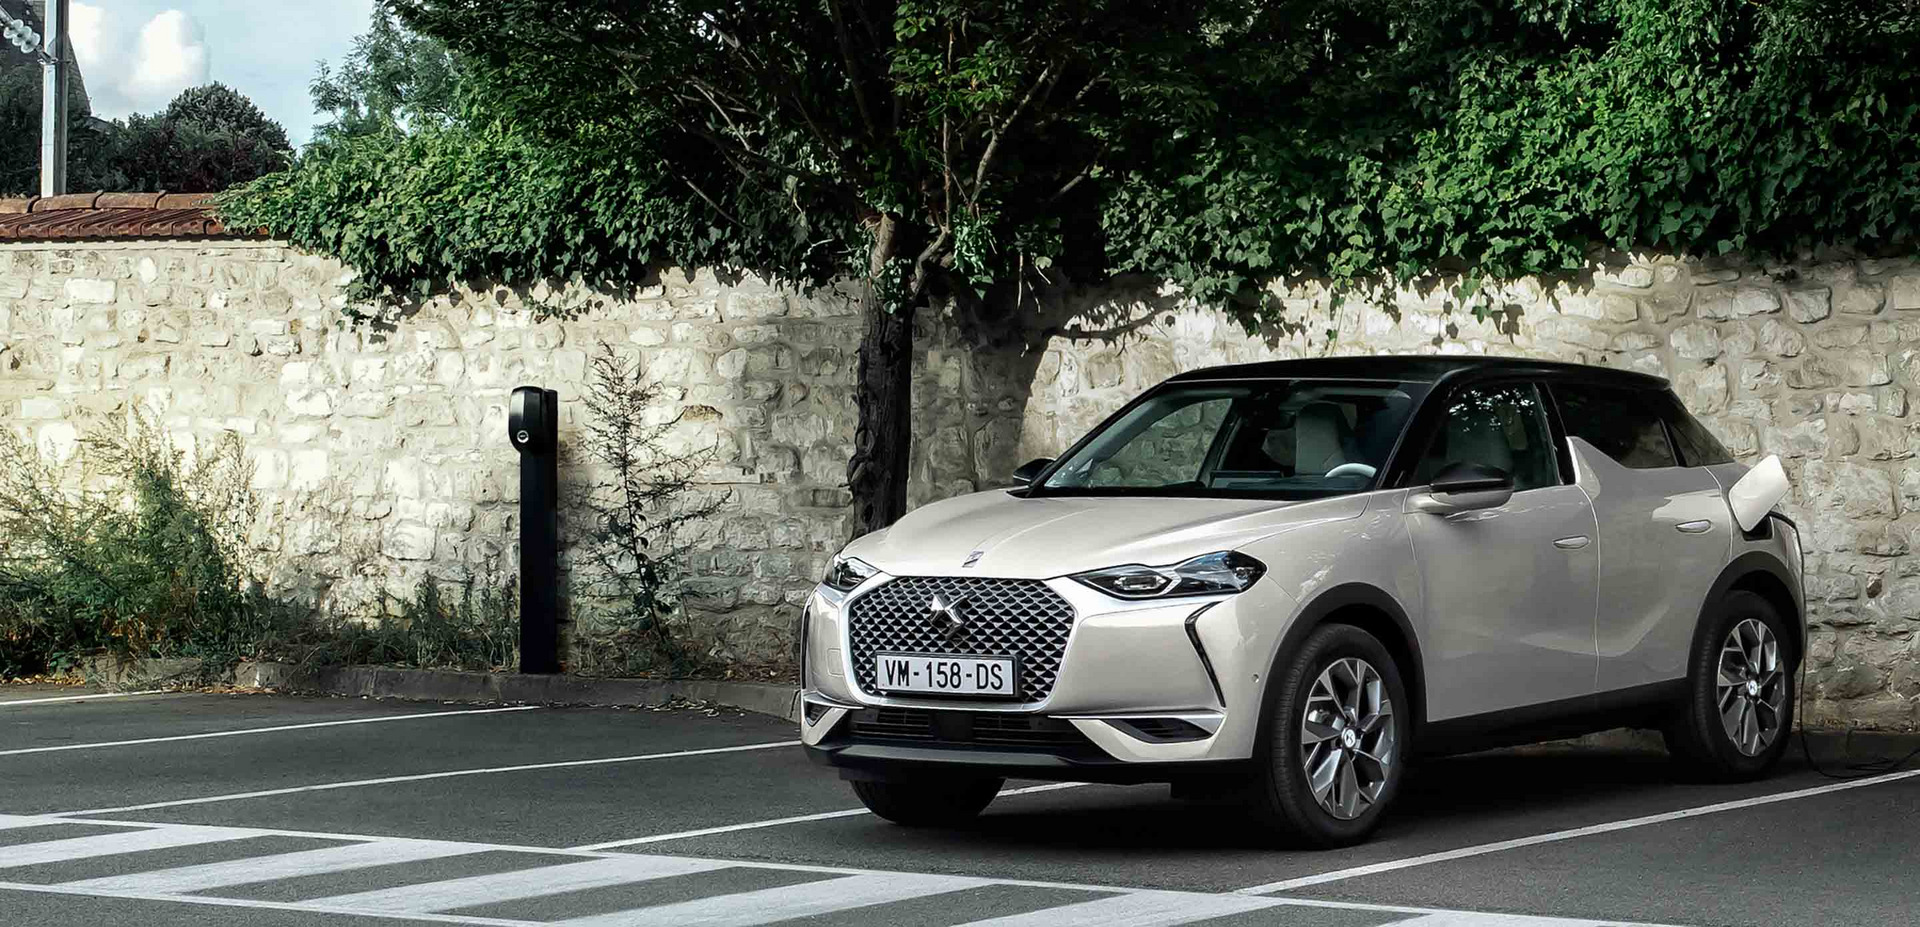 ds 3 crossback etense.jpg (715 KB)